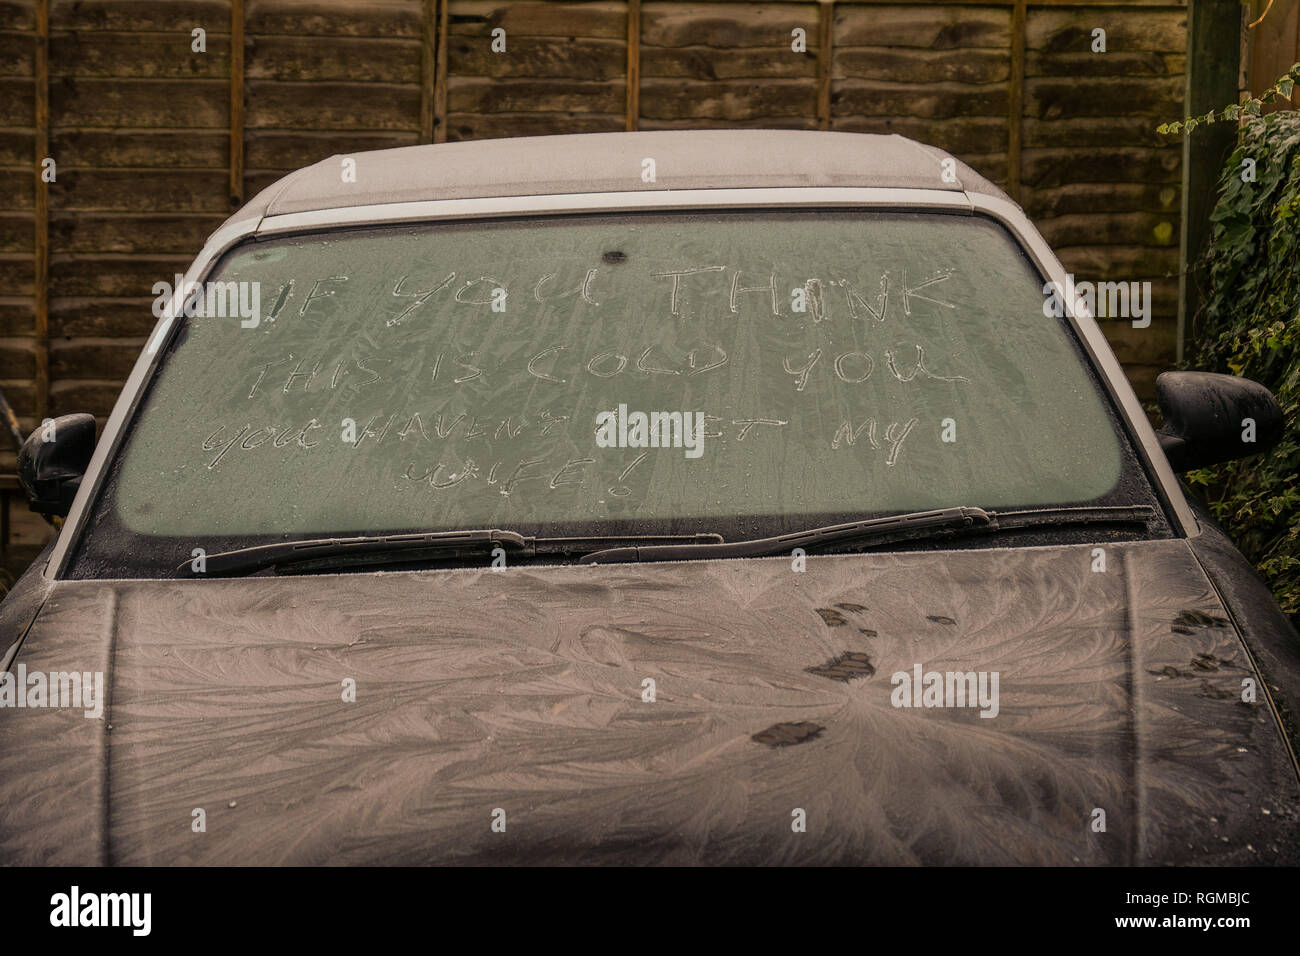 Weather UK. Stroud, Gloucestershire, 30th of January 2019. A motorist jokes about the weather and likeness the cold frost to his wife. Credit: Gavin Crilly/Alamy Live News - Stock Image